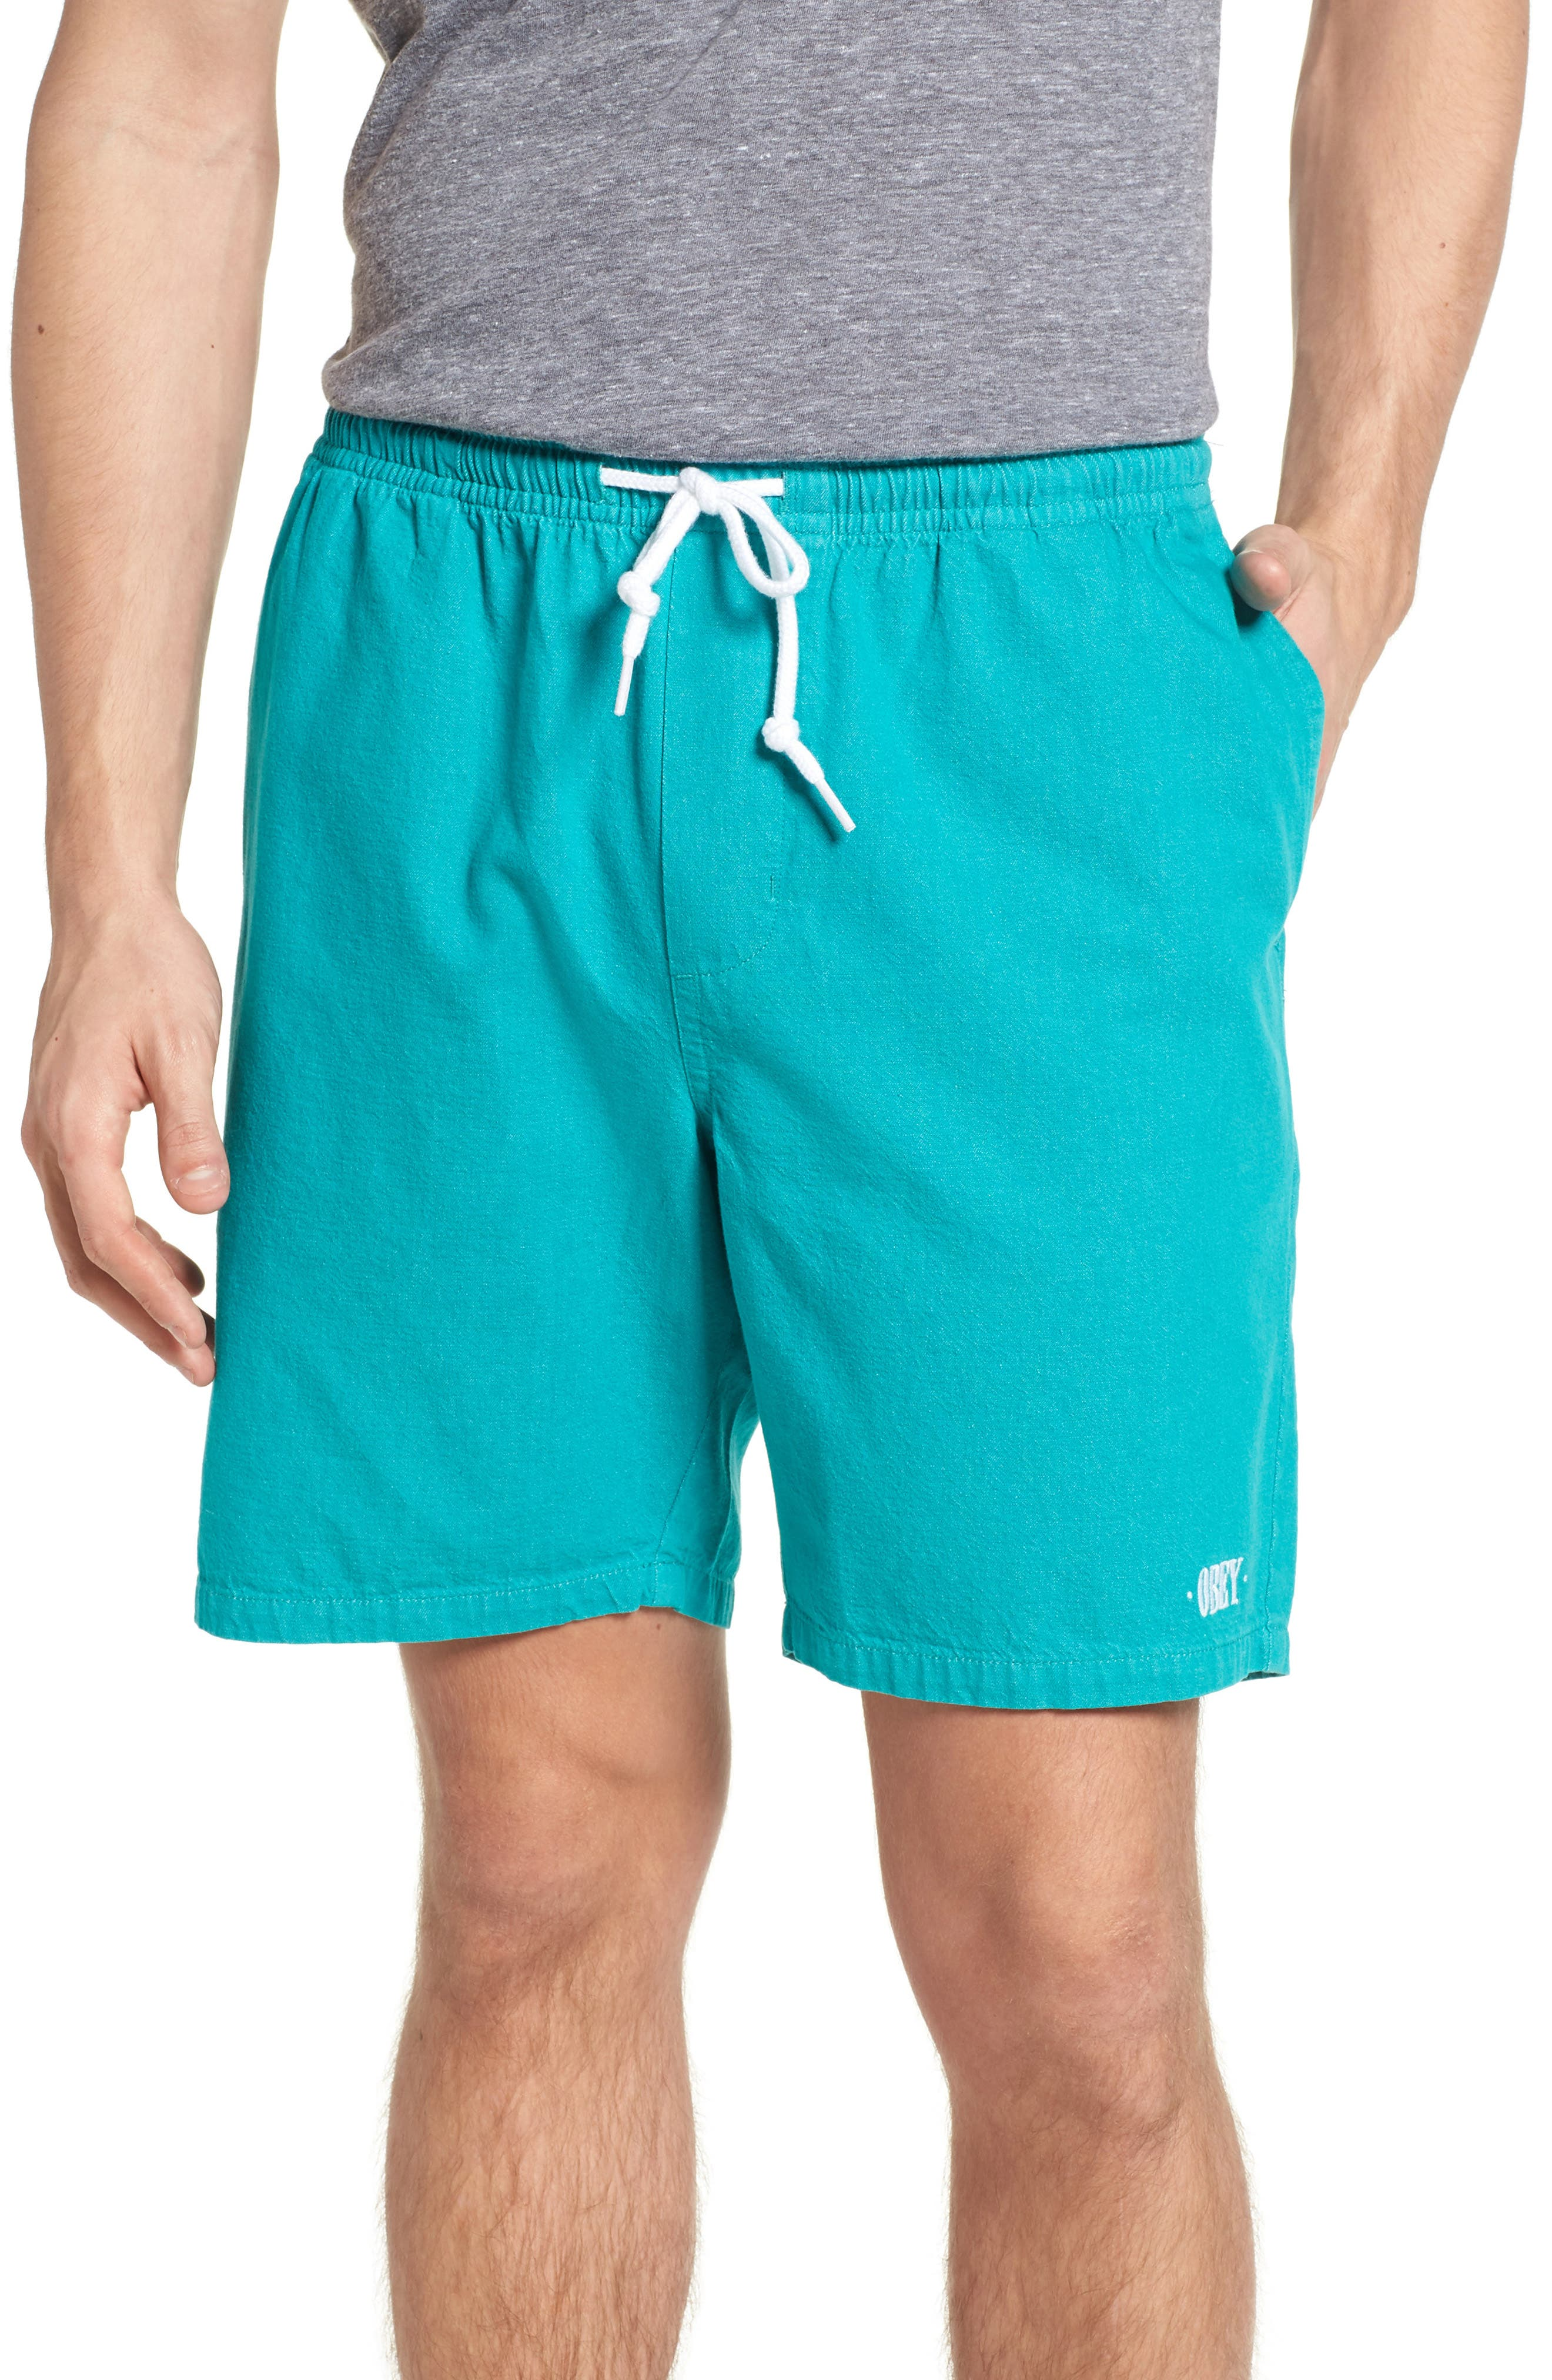 Keble Drawstring Shorts,                             Main thumbnail 1, color,                             445